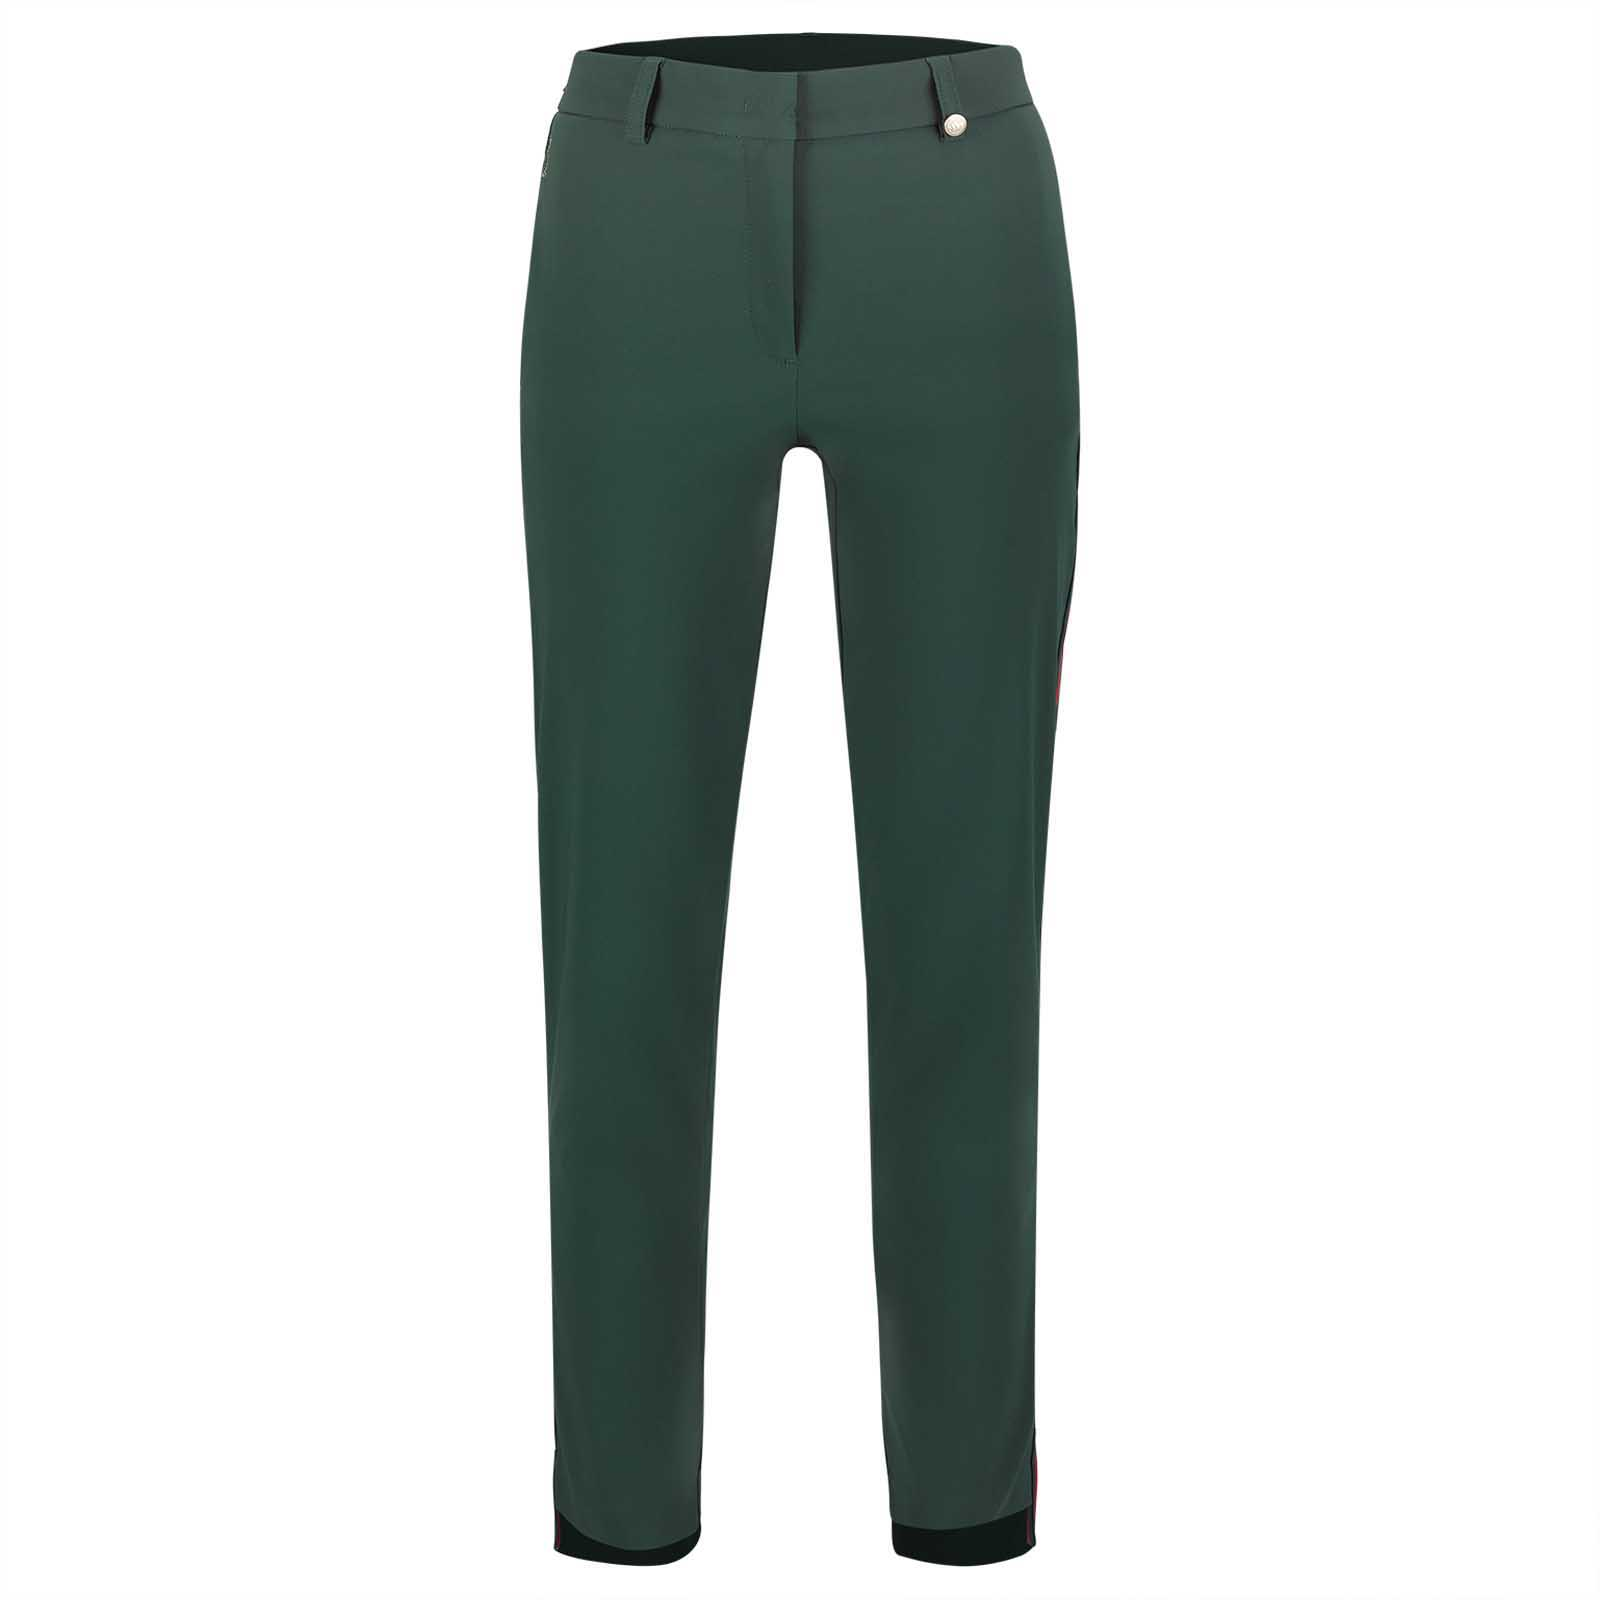 Ladies' waterproof 7/8 golf trousers made from techno stretch material with UV protection